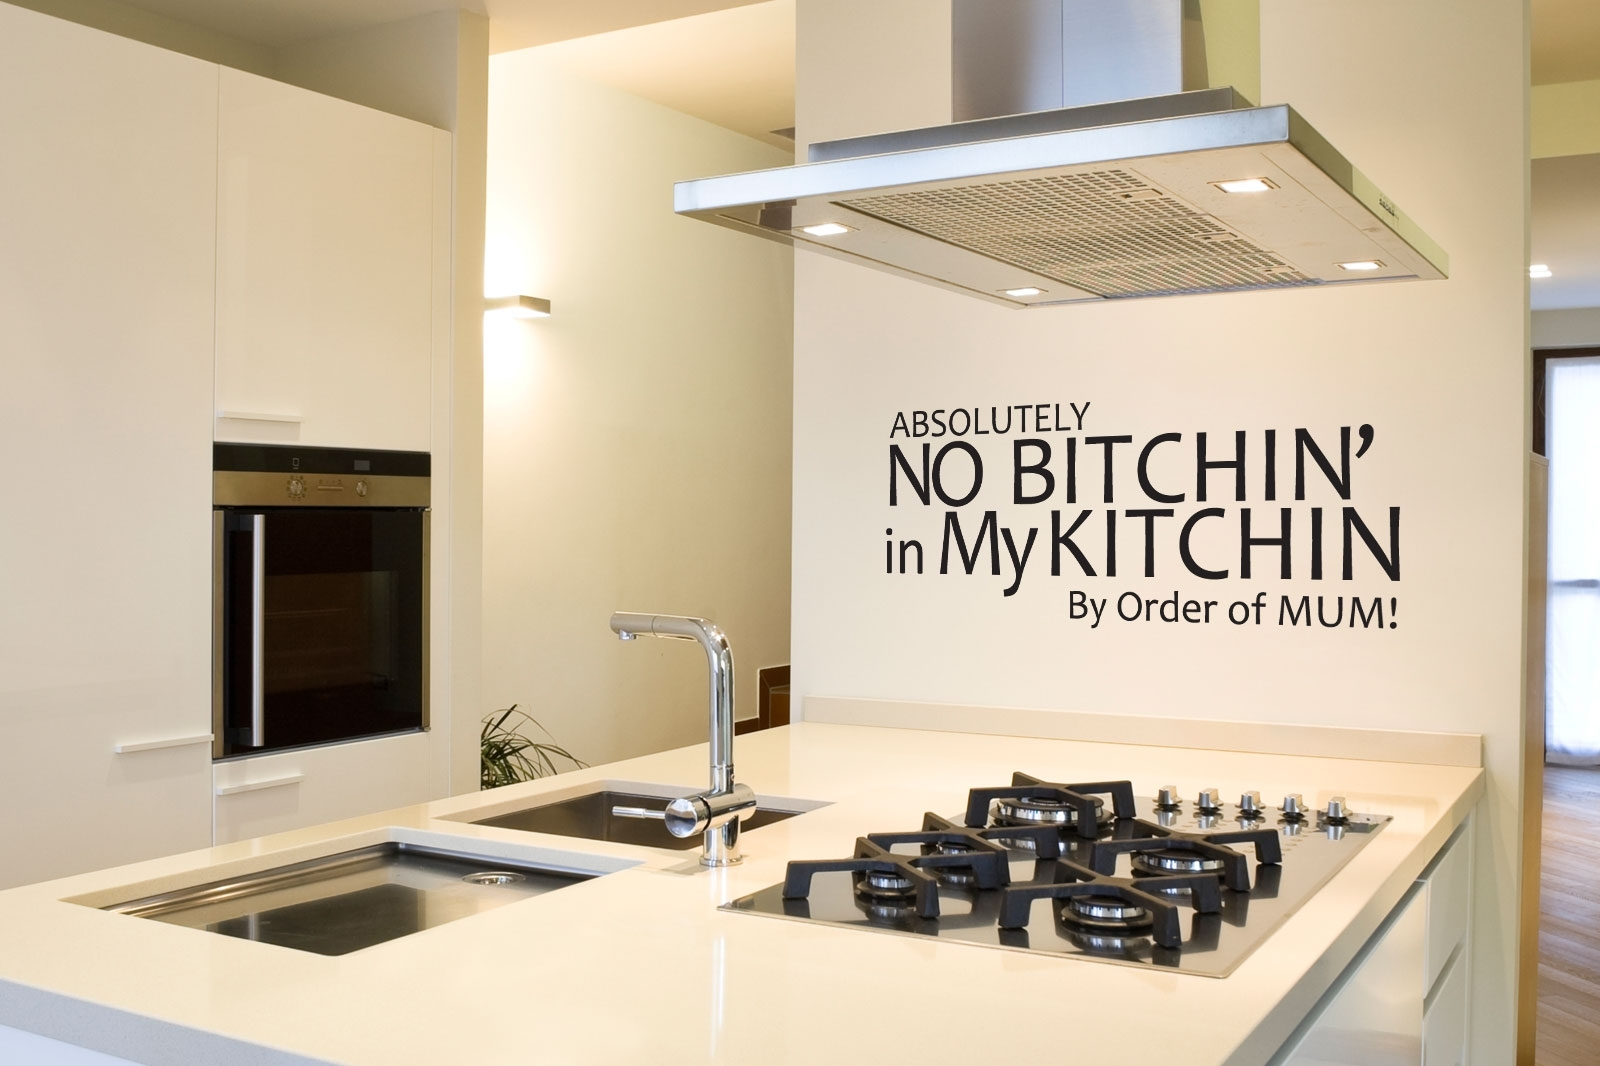 Kitchen : Charming Modern Kitchen Wall Decor Diy Ideas With How To Regarding Recent Garage Wall Accents (Gallery 15 of 15)